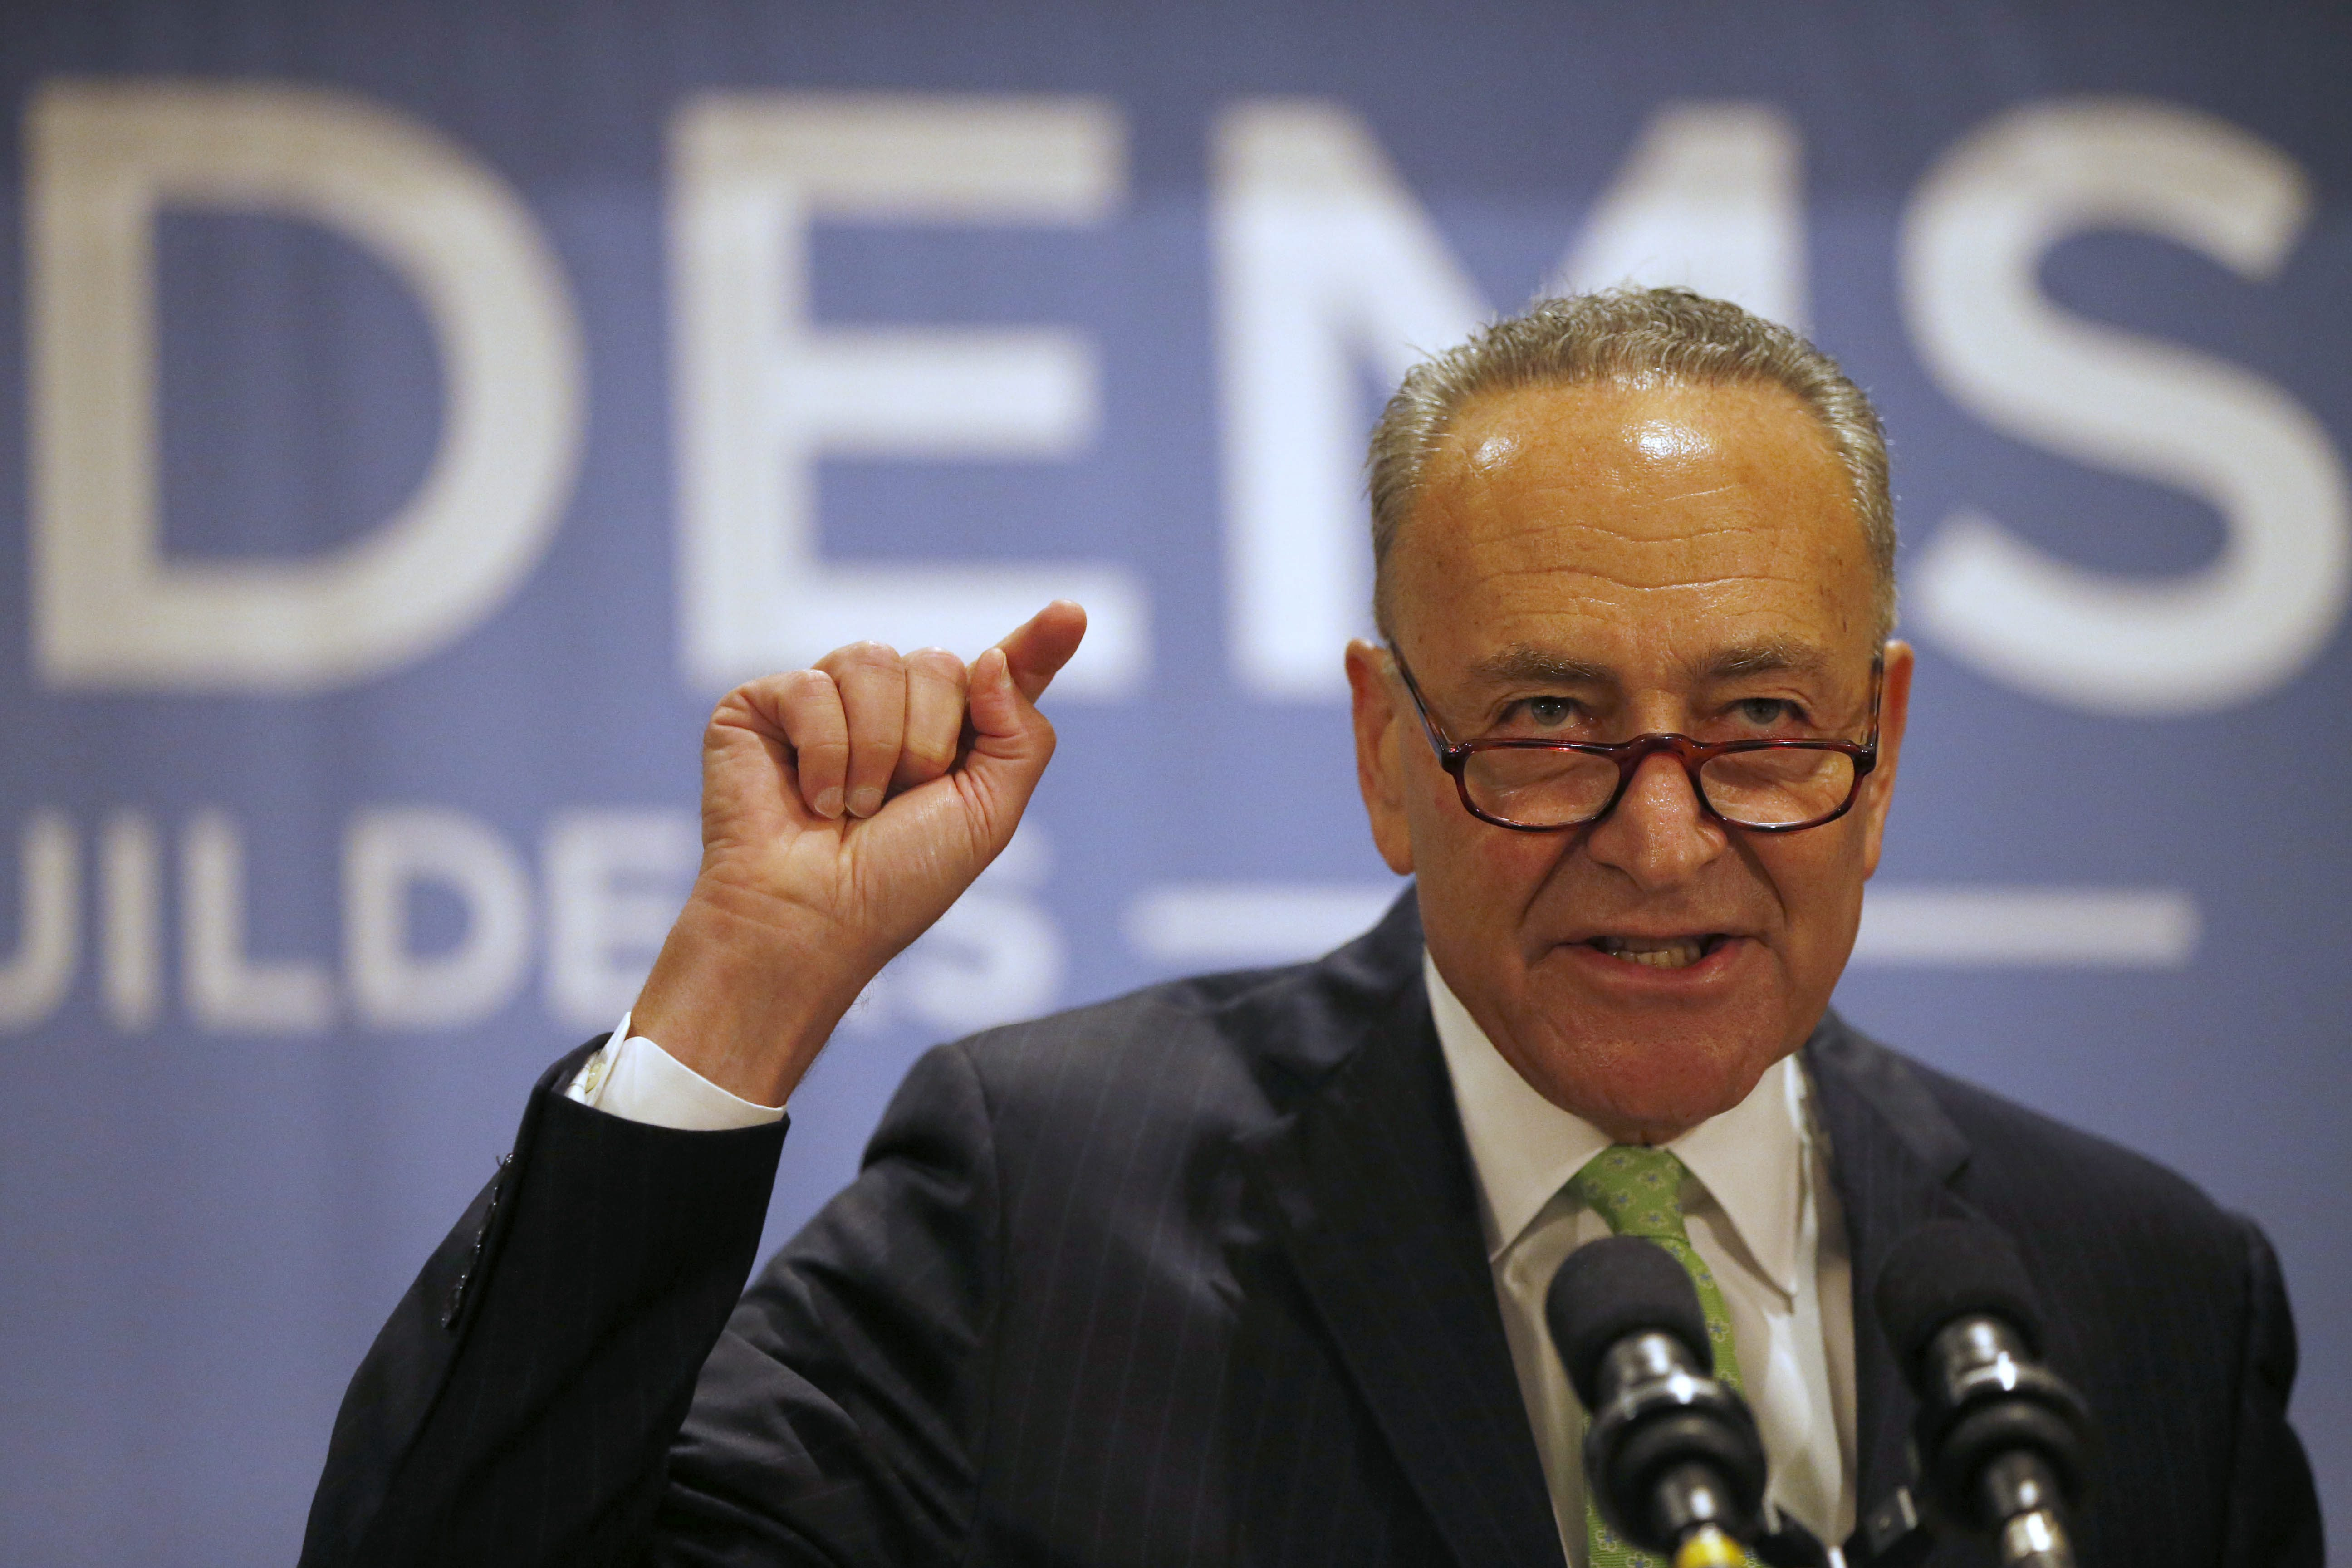 Sen. Charles Schumer speaks during the New York Democrat breakfast at the Loews Hotel in Philadelphia, Wednesday, July 27, 2016. (Derek Gee/Buffalo News)